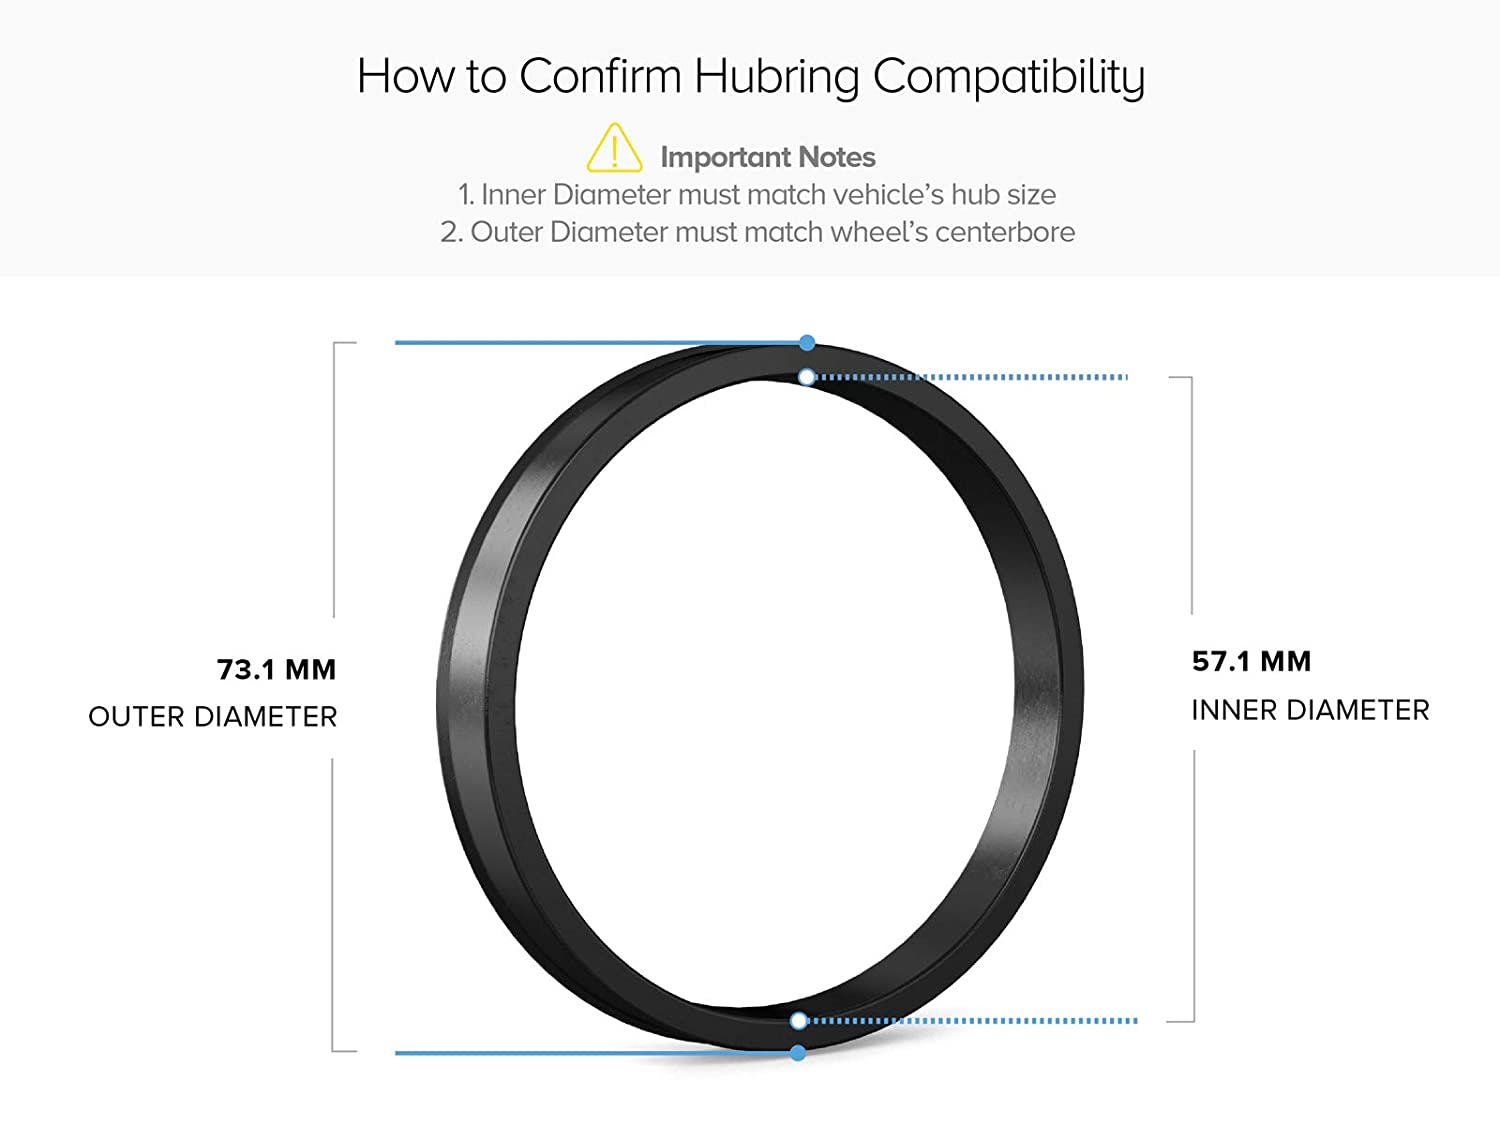 Hubcentric Rings Pack of 4 Only Fits 57.1mm Vehicle Hub /& 73.1mm Wheel Centerbore Silver Aluminum Hubrings - 57.1mm ID to 73.1mm OD